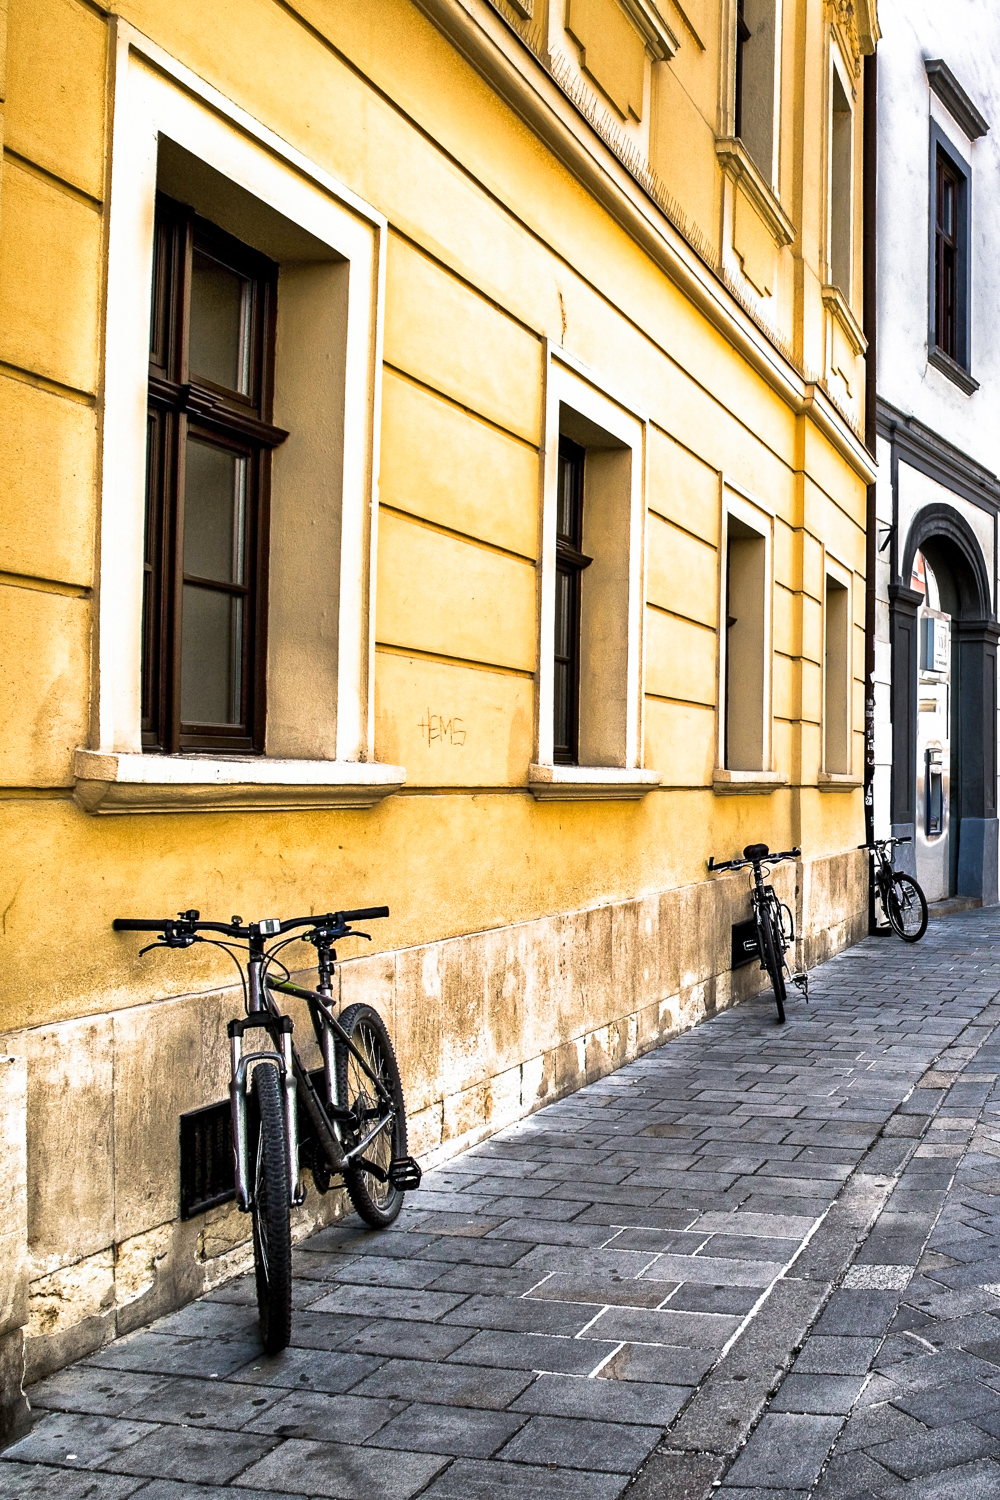 Bratislava-Bicycles-Against-Building-Street.jpg